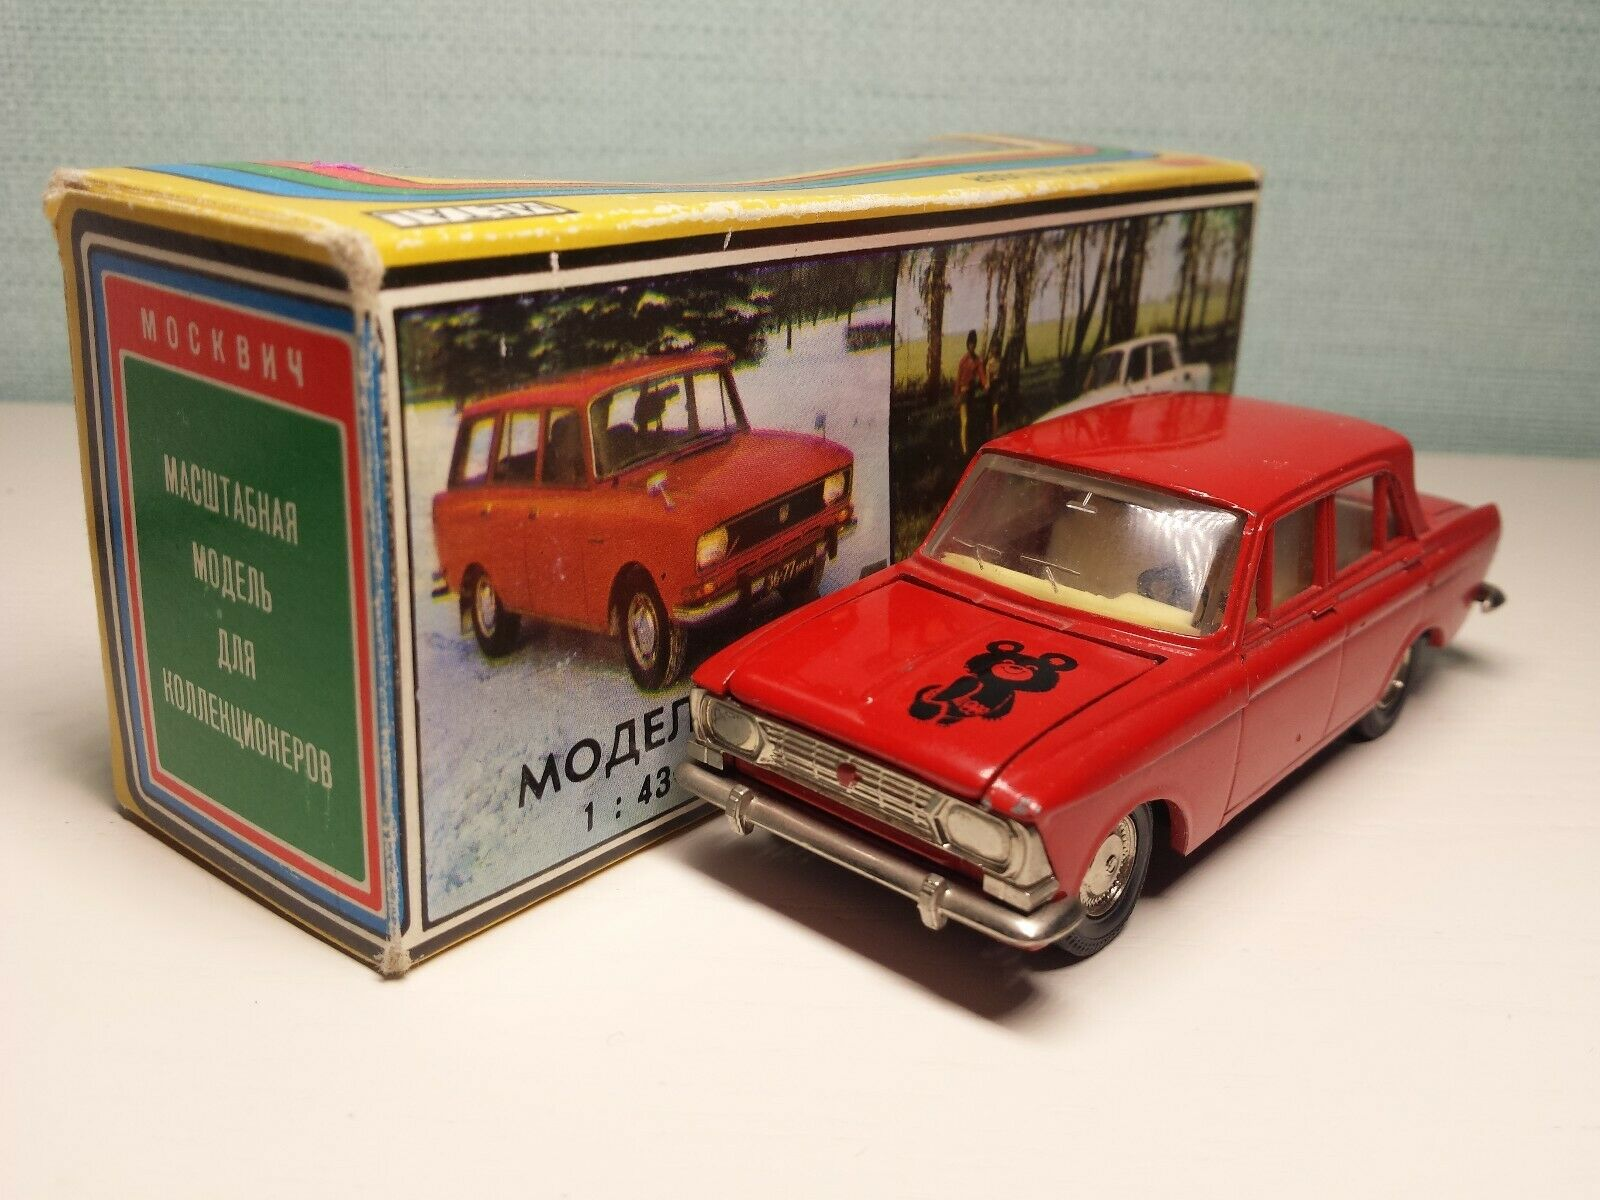 Moskvitch 412 A2 JEUX OLYMPIQUES Bear 1 43 Mishka made in URSS